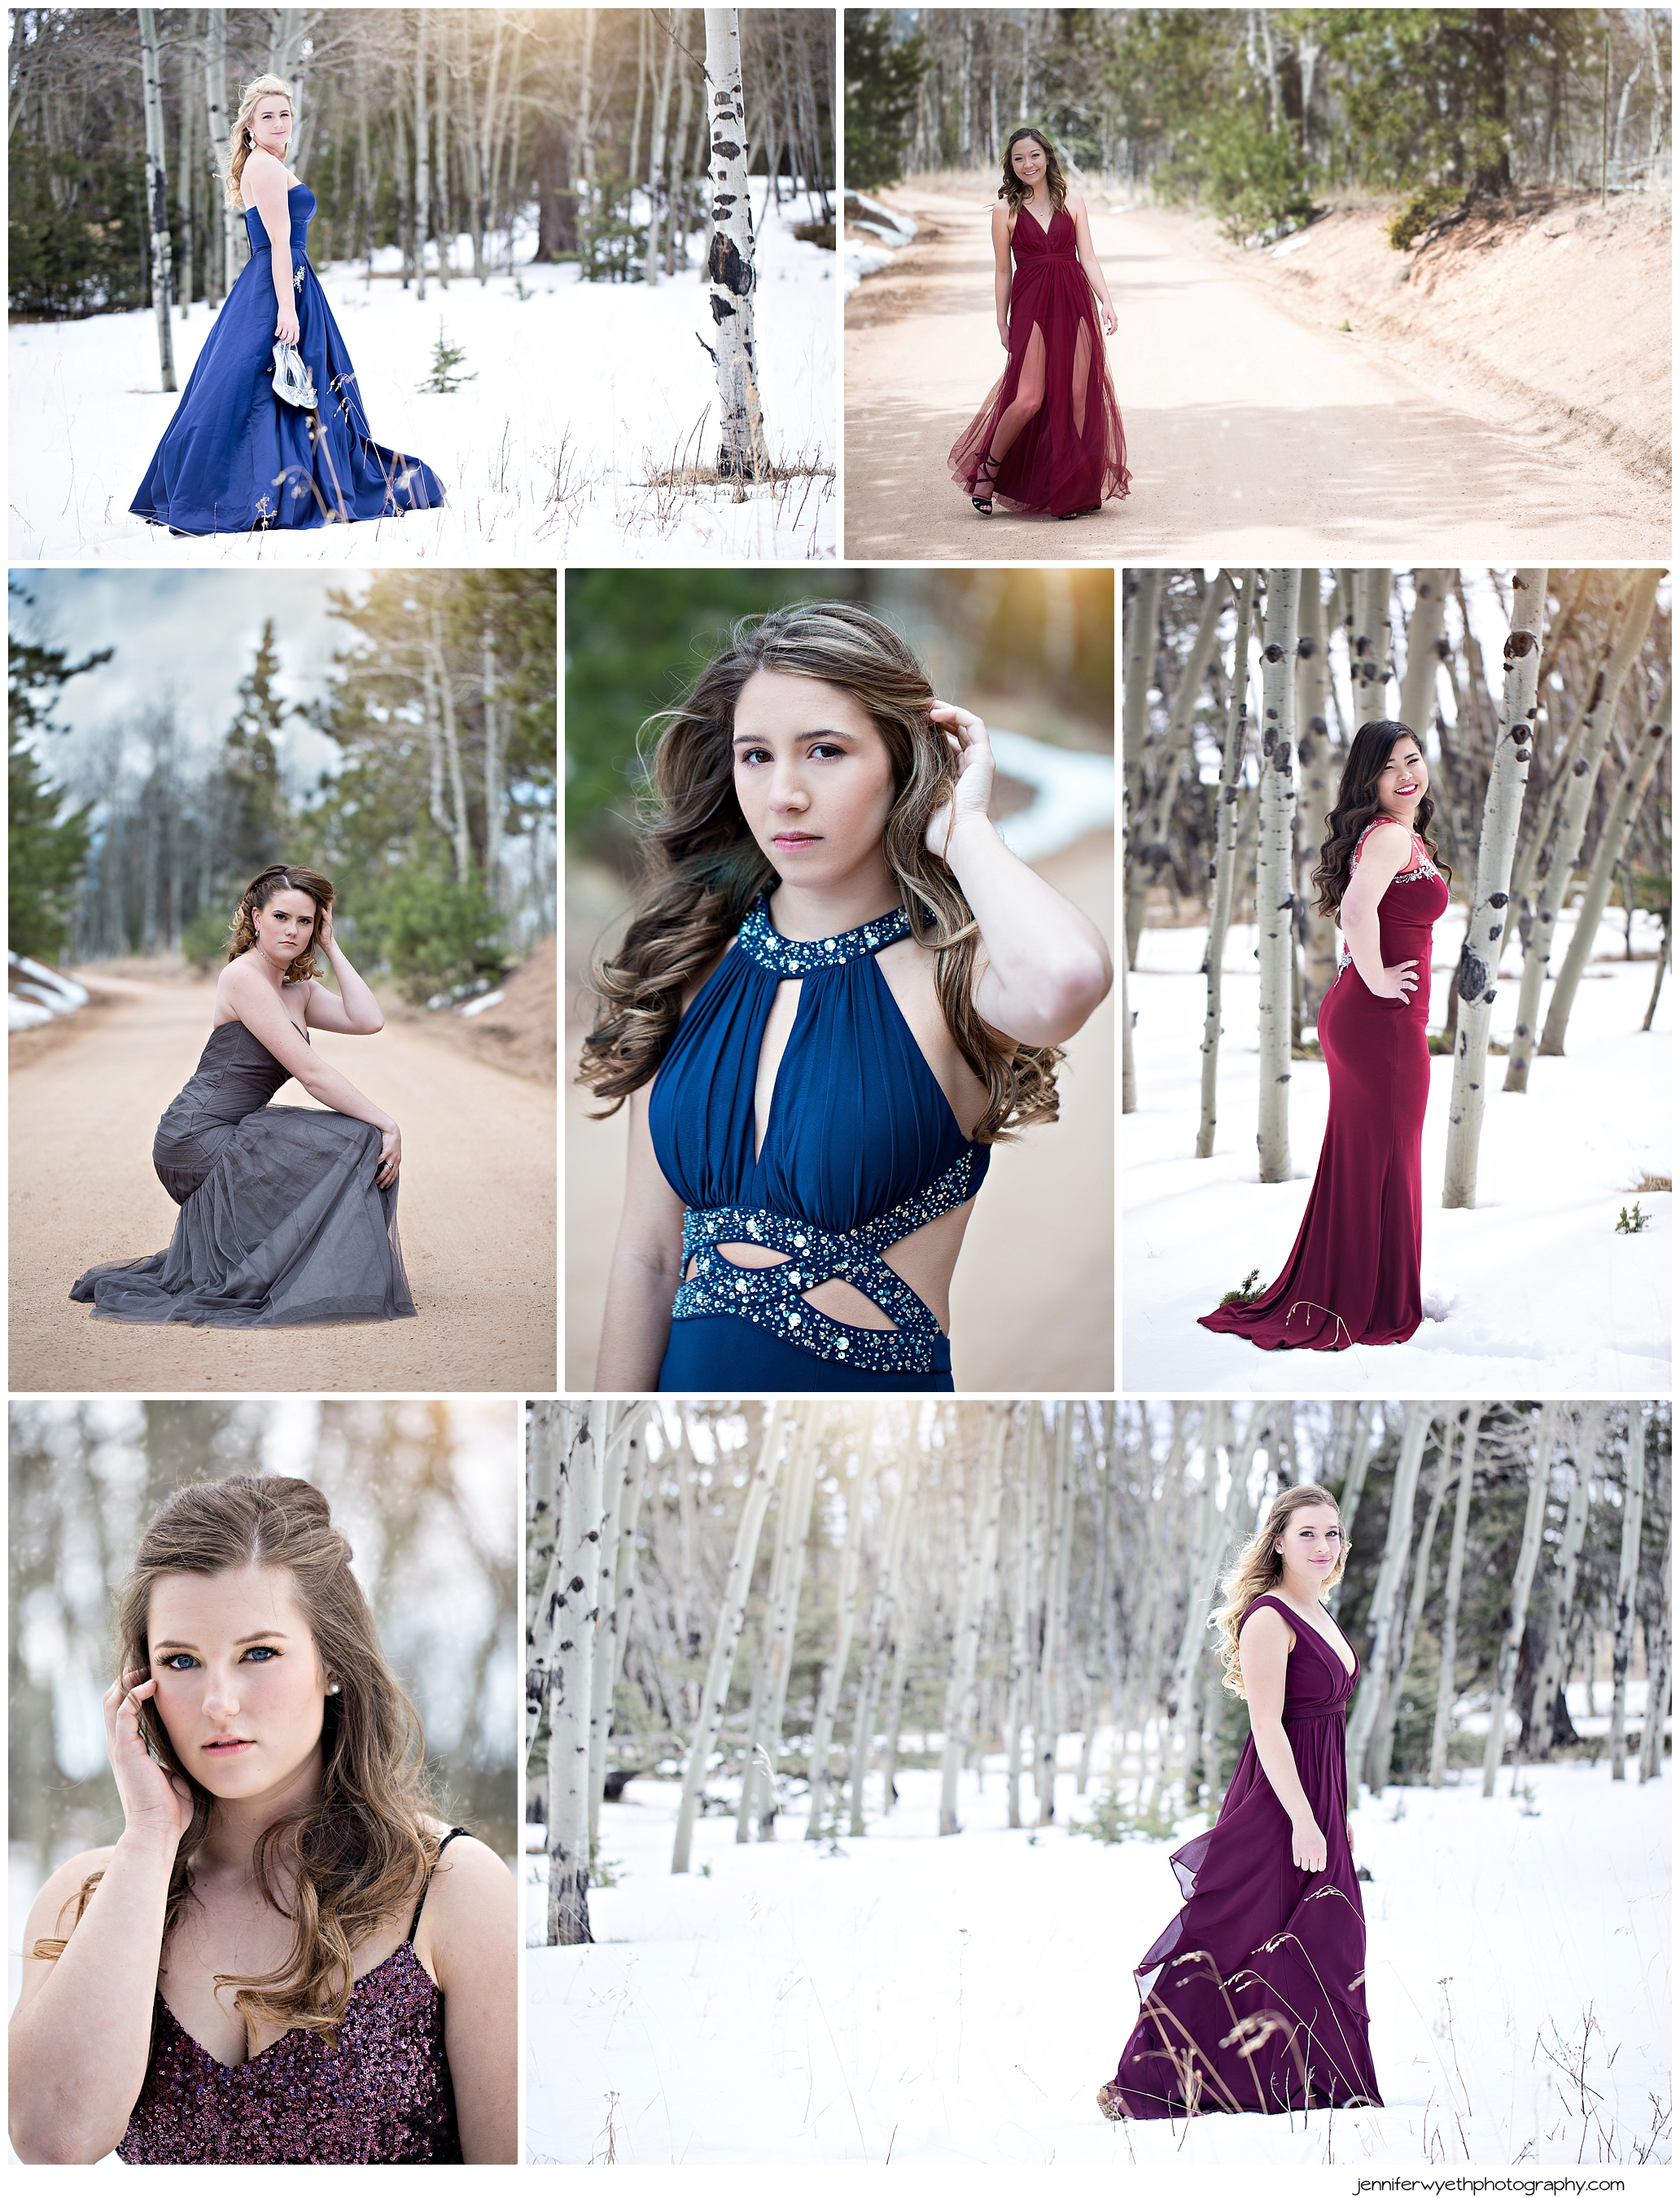 Jennifer-Wyeth-photography-senior-pictures-colorado-springs-photographer_0211.jpg